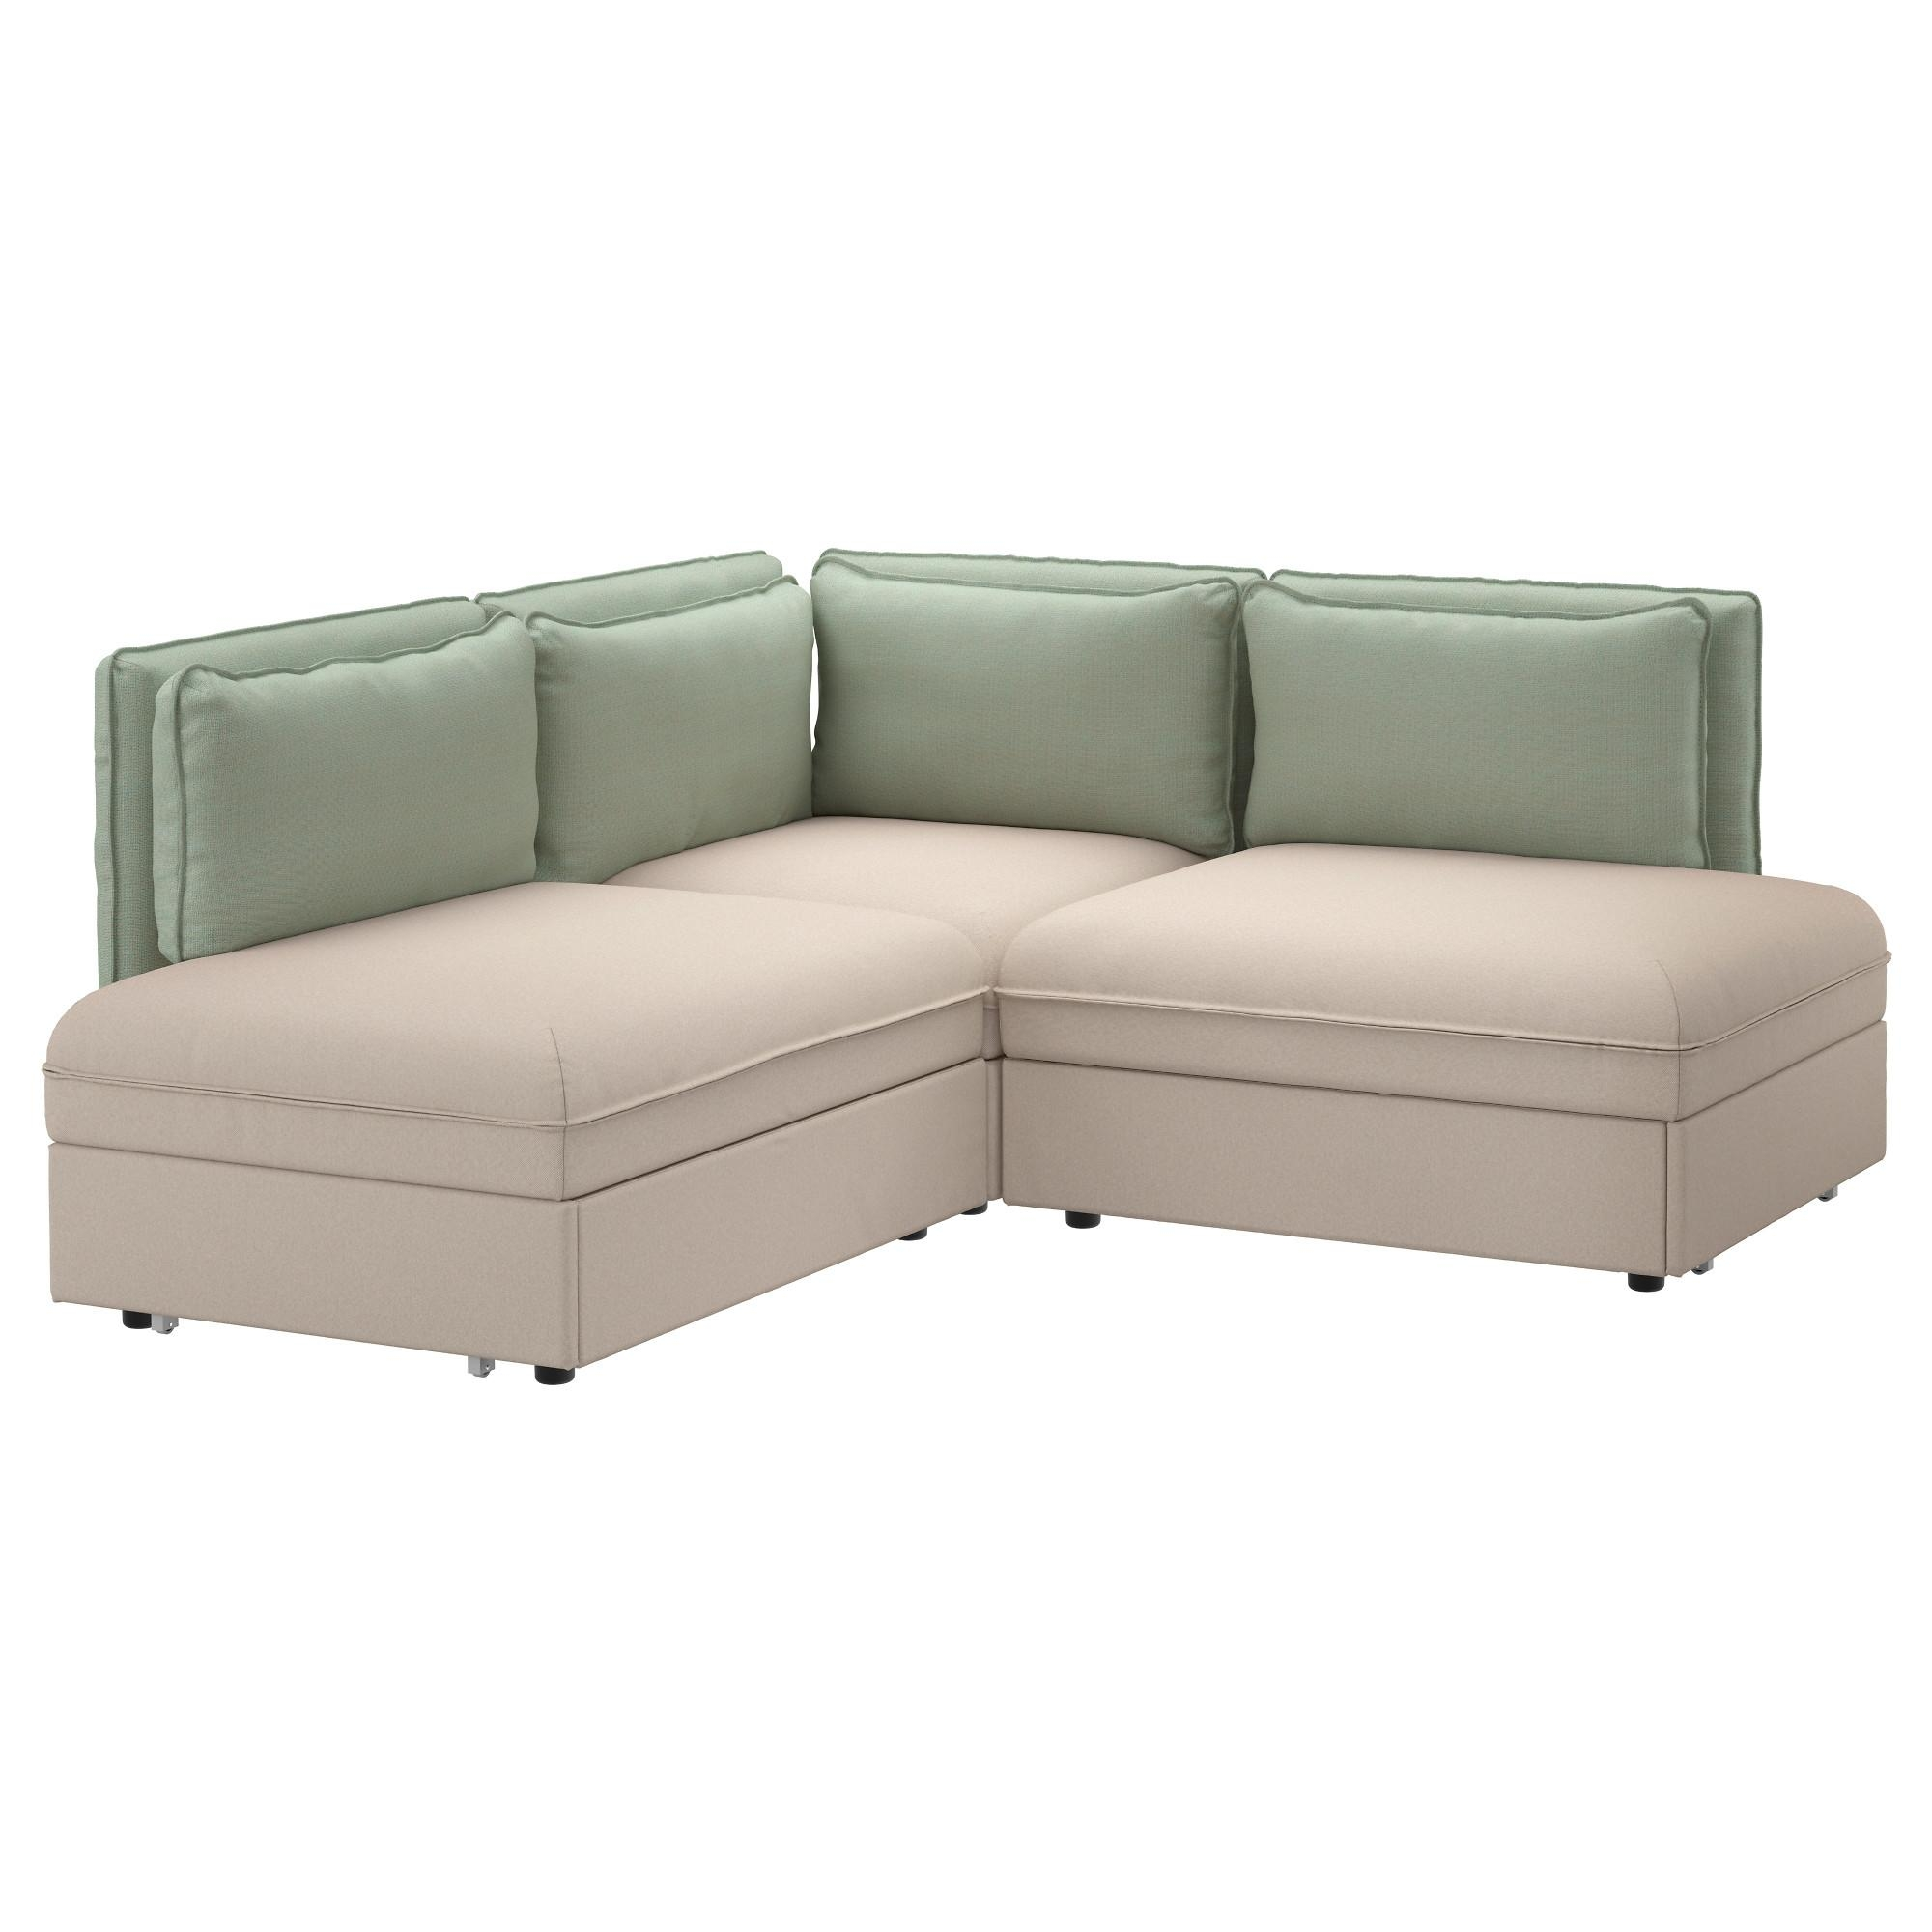 Sofa Beds & Futons – Ikea Pertaining To Sectional Sofa Bed With Storage (View 17 of 20)